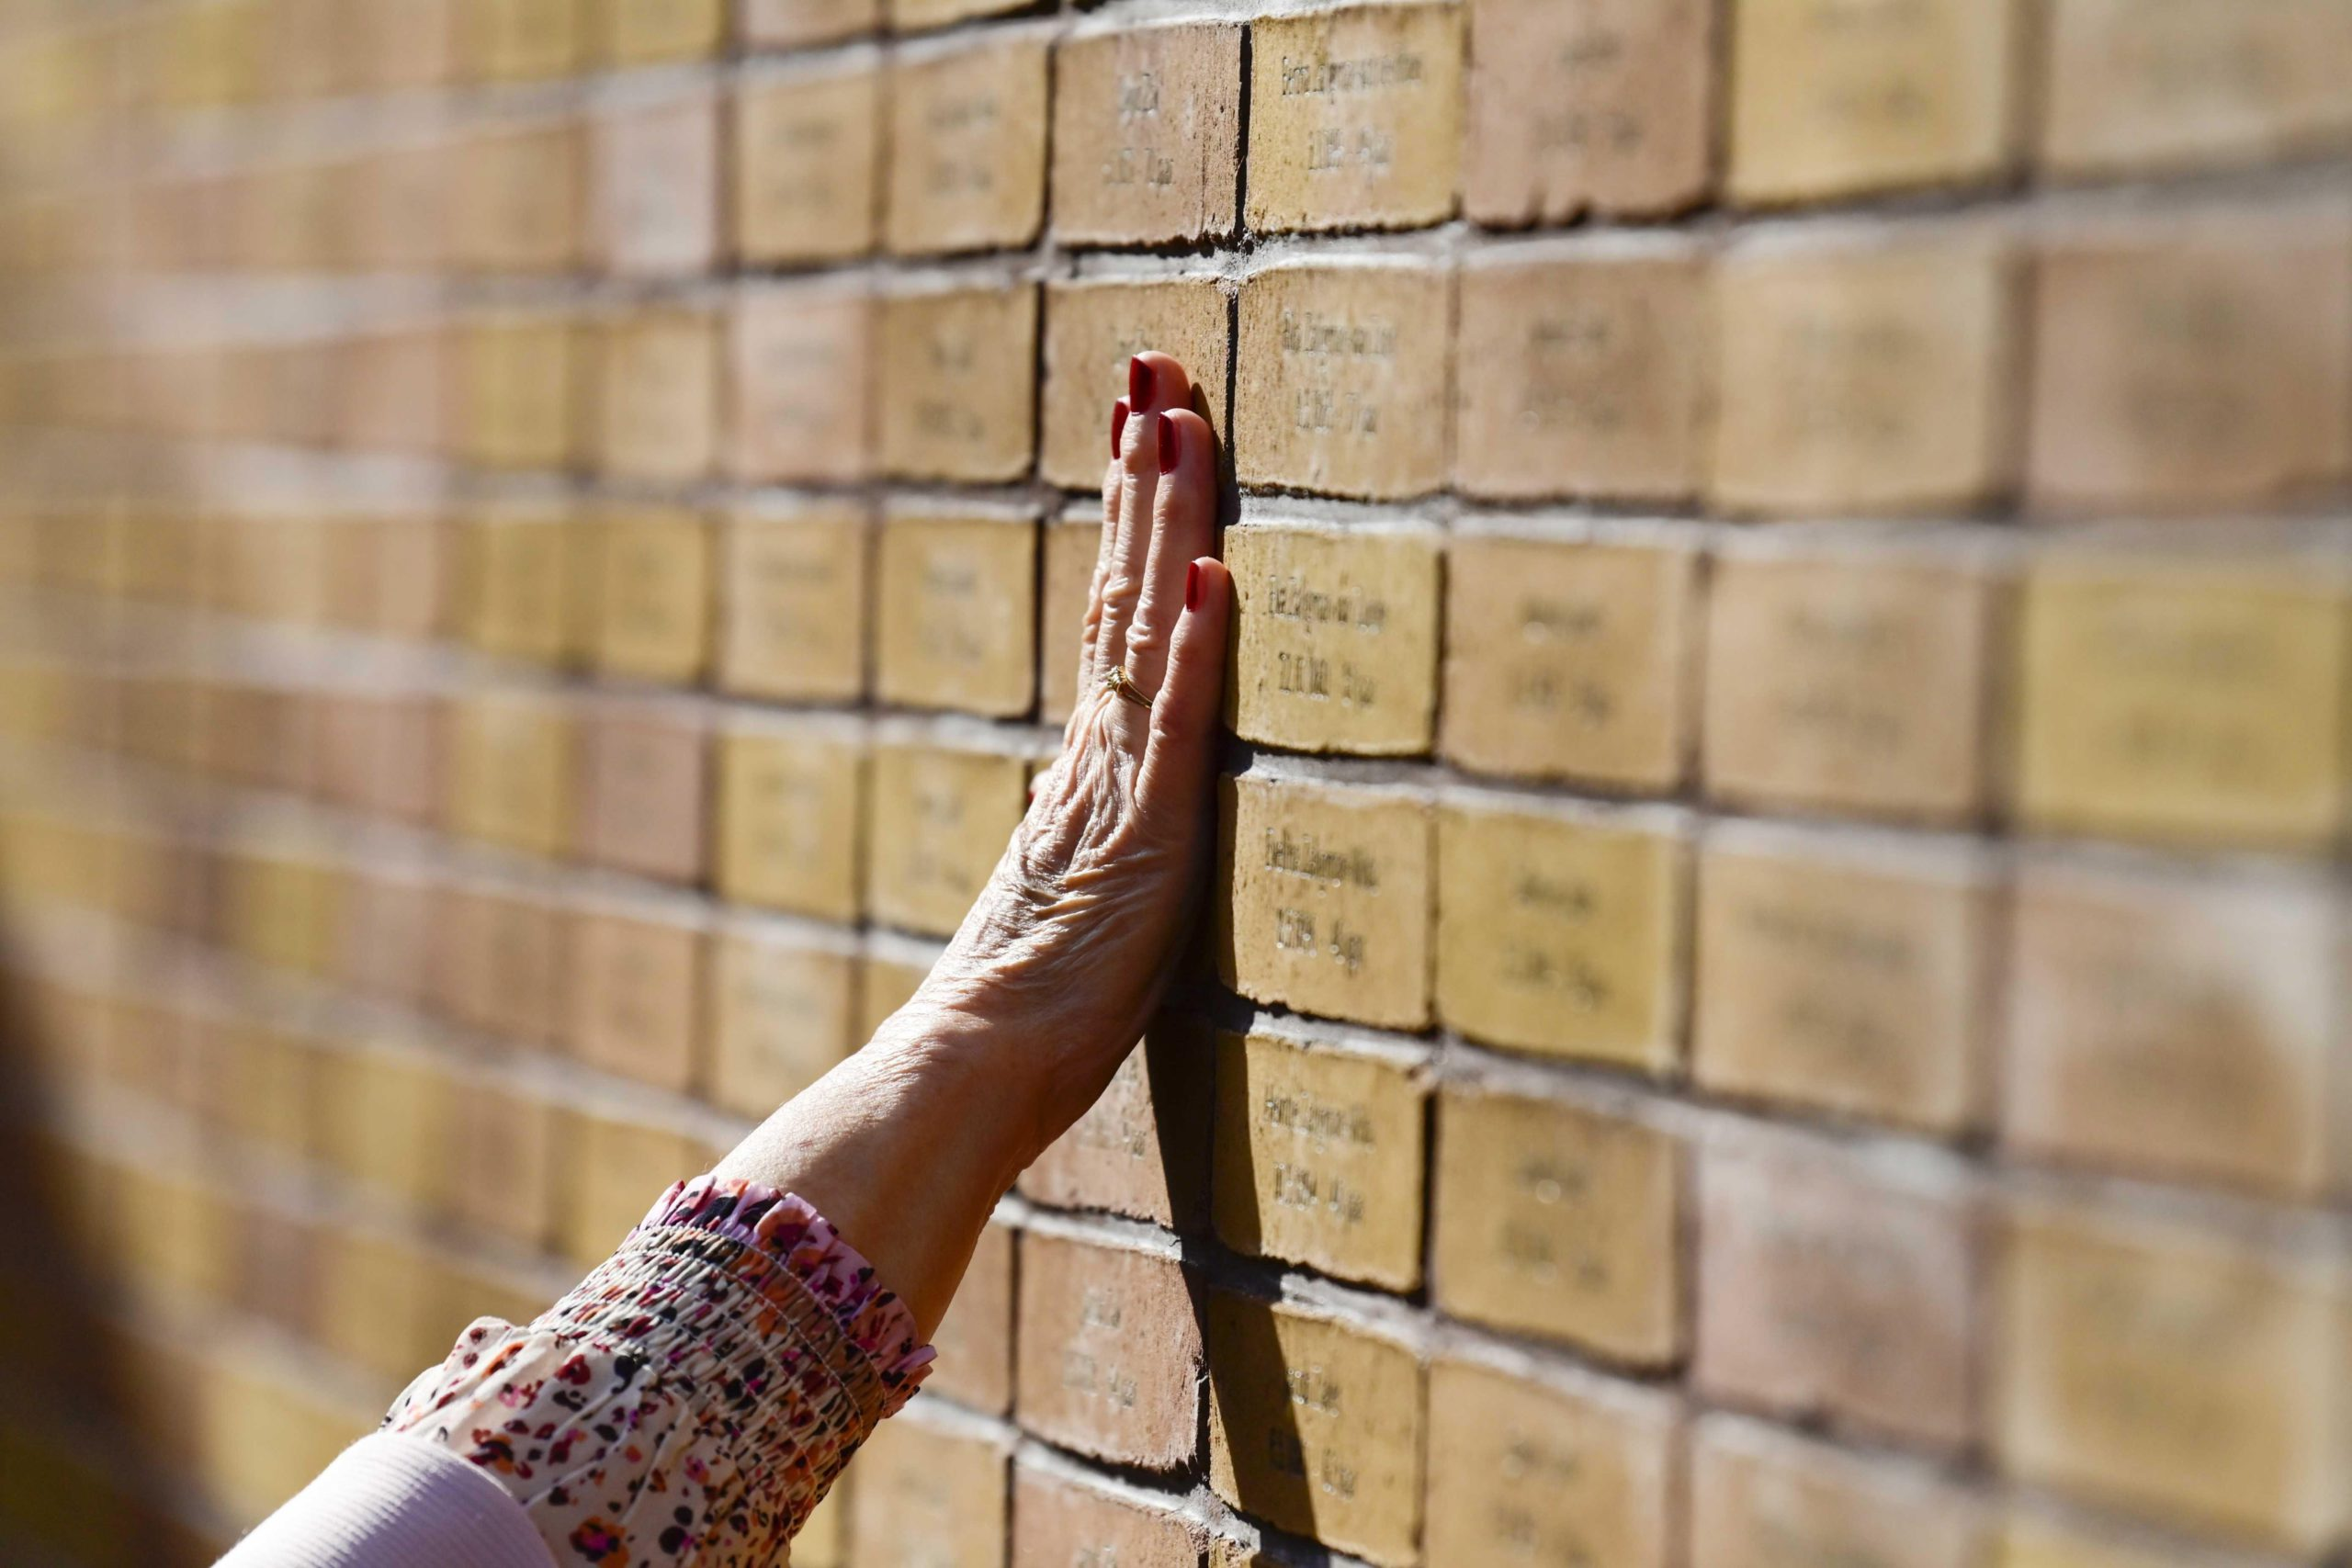 Amsterdam inaugurates a monument to the Jewish and Roma victims of the Holocaust